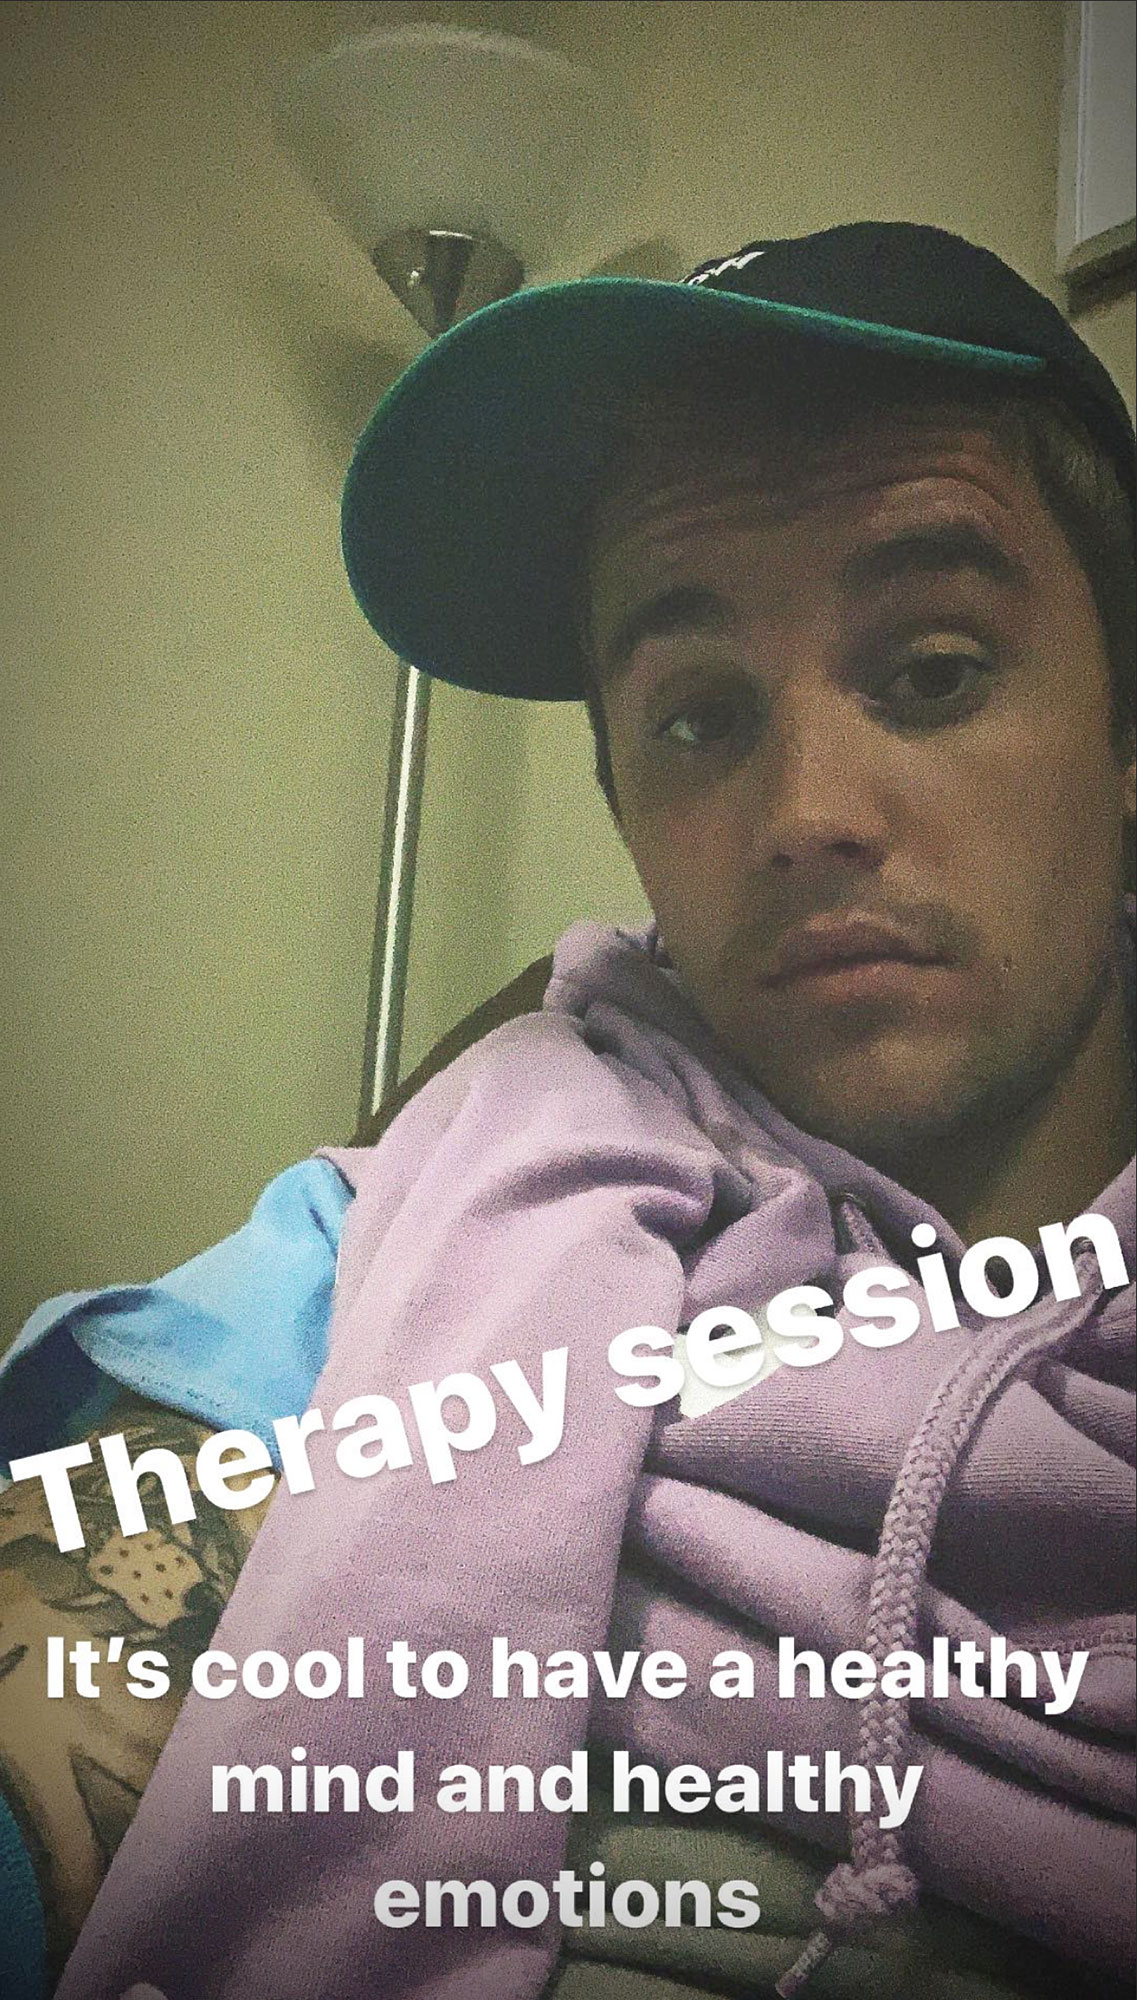 Justin Bieber Therapy Selfie Healthy Mind